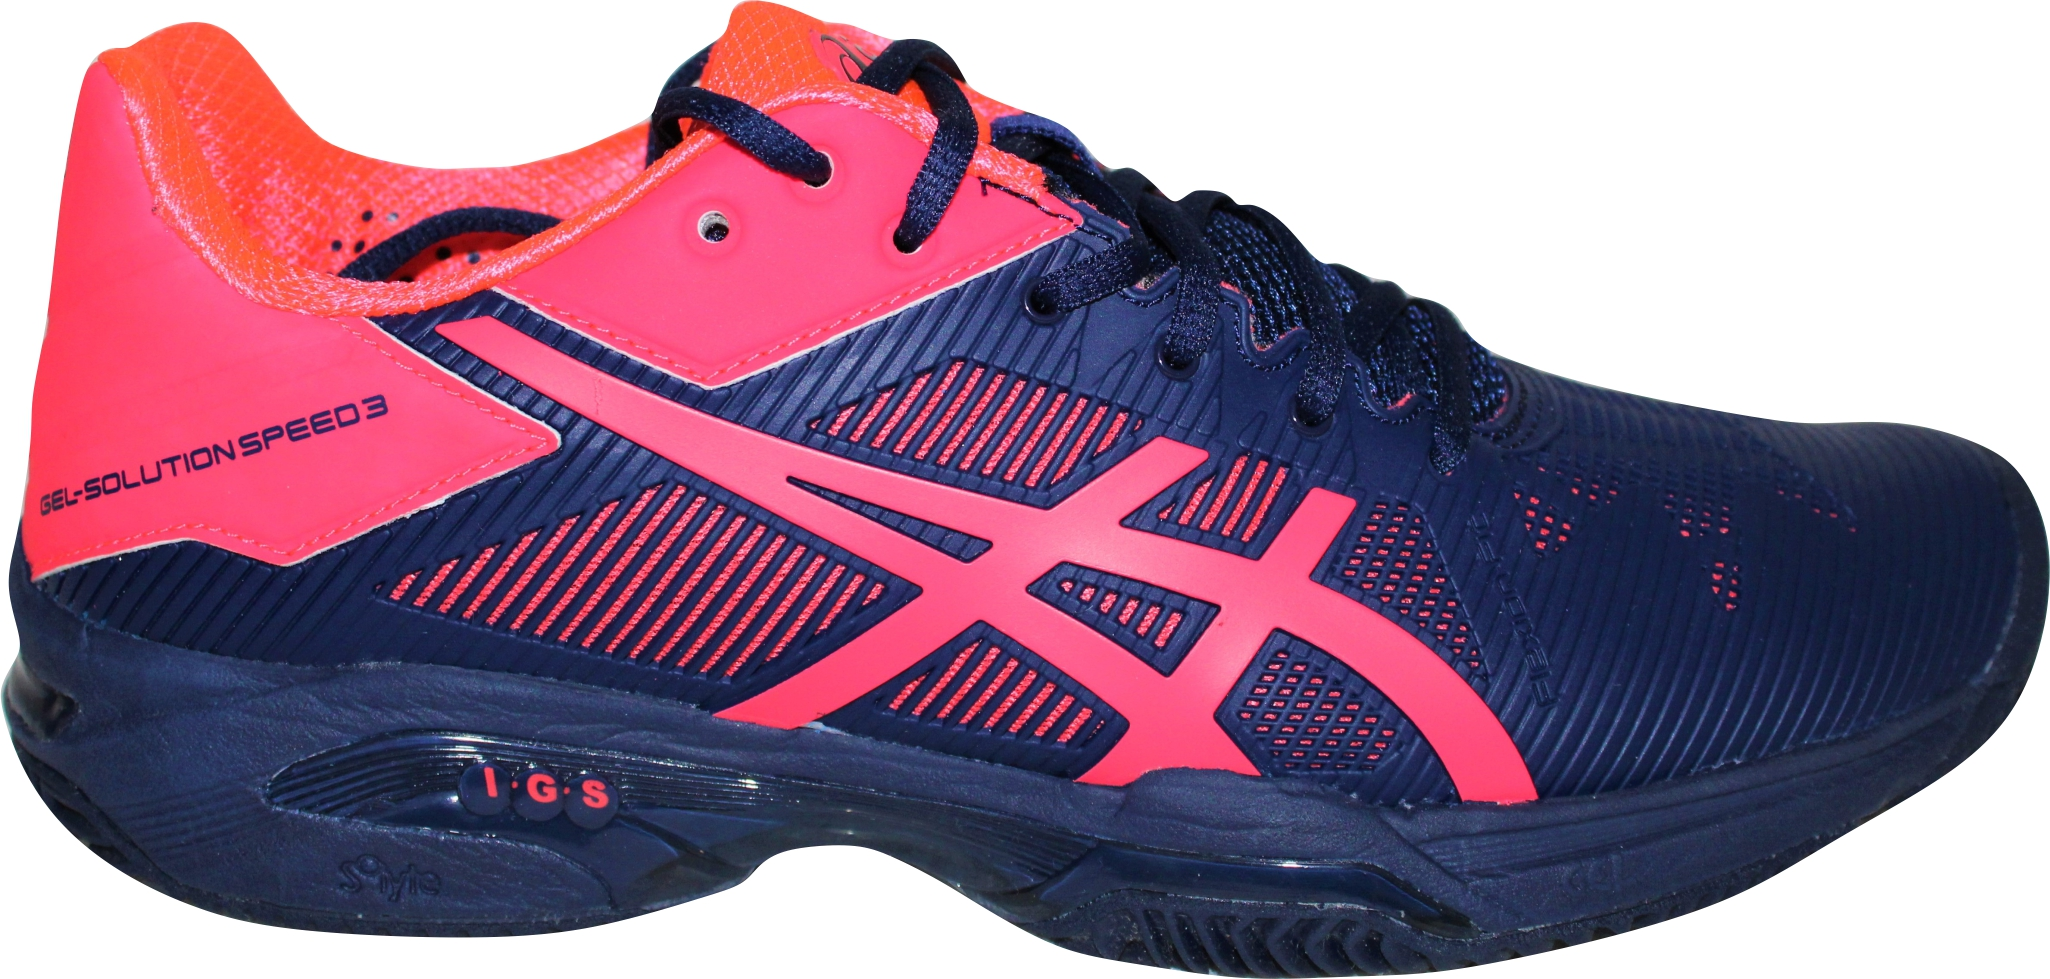 Tennisshop Tennisseite TP24 - ASICS Damen Tennisschuhe Gel Solution ...